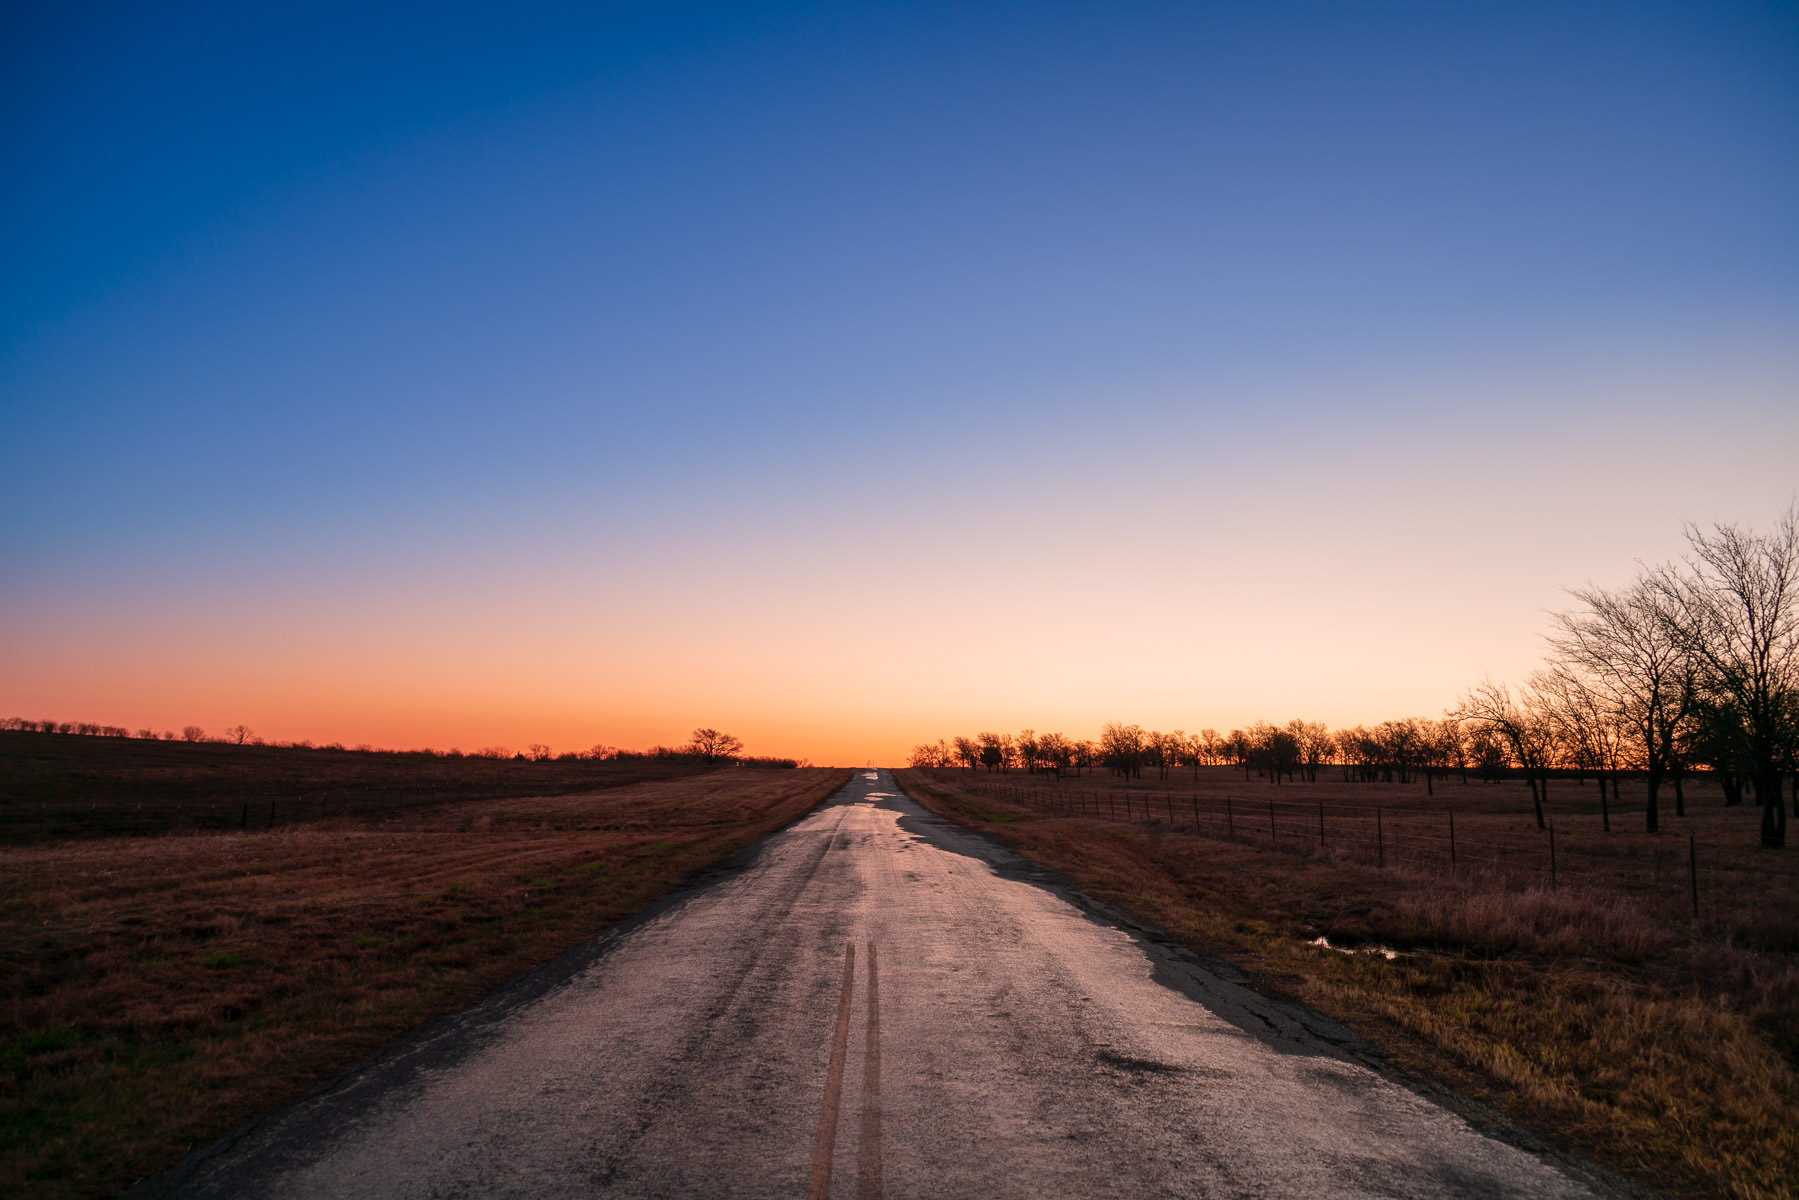 The first light of the day begins to illuminate a country road in North Texas.